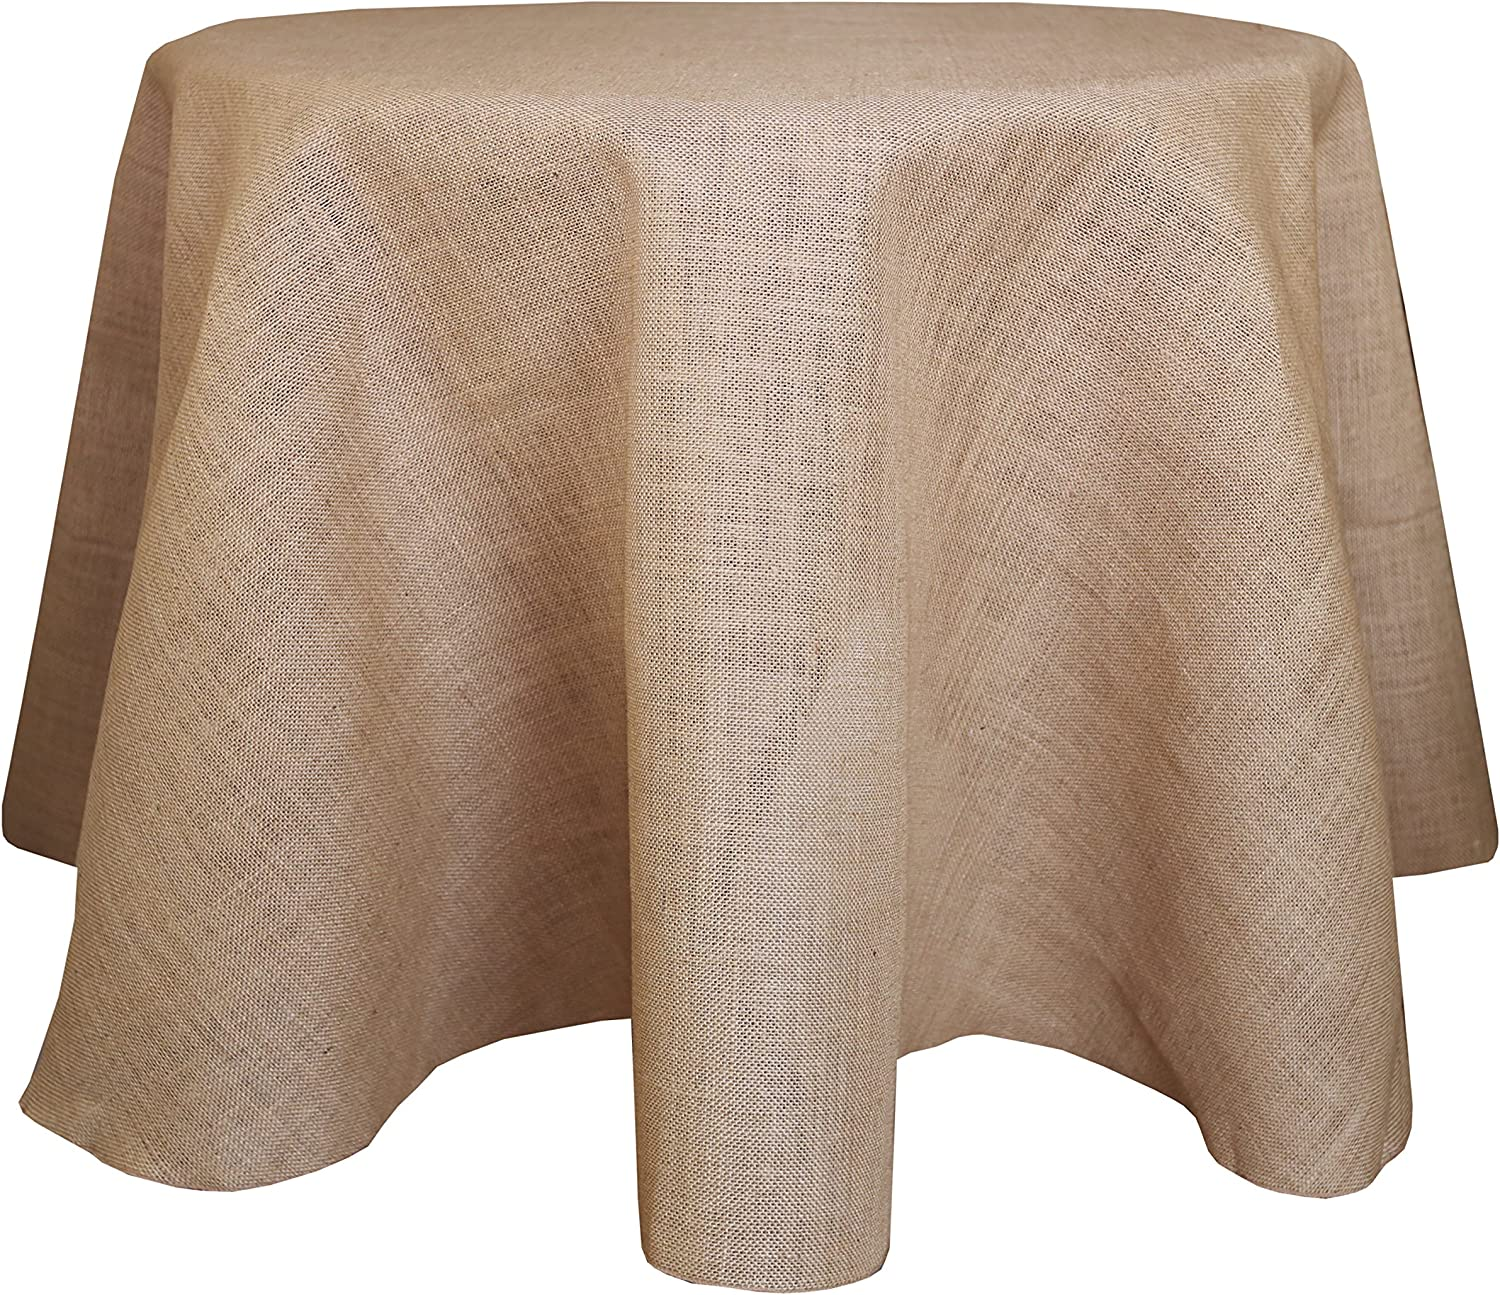 Ultimate Textile Burlap 132-Inch Round Cheap mail order shopping Jute Natural Tablecloth Max 85% OFF